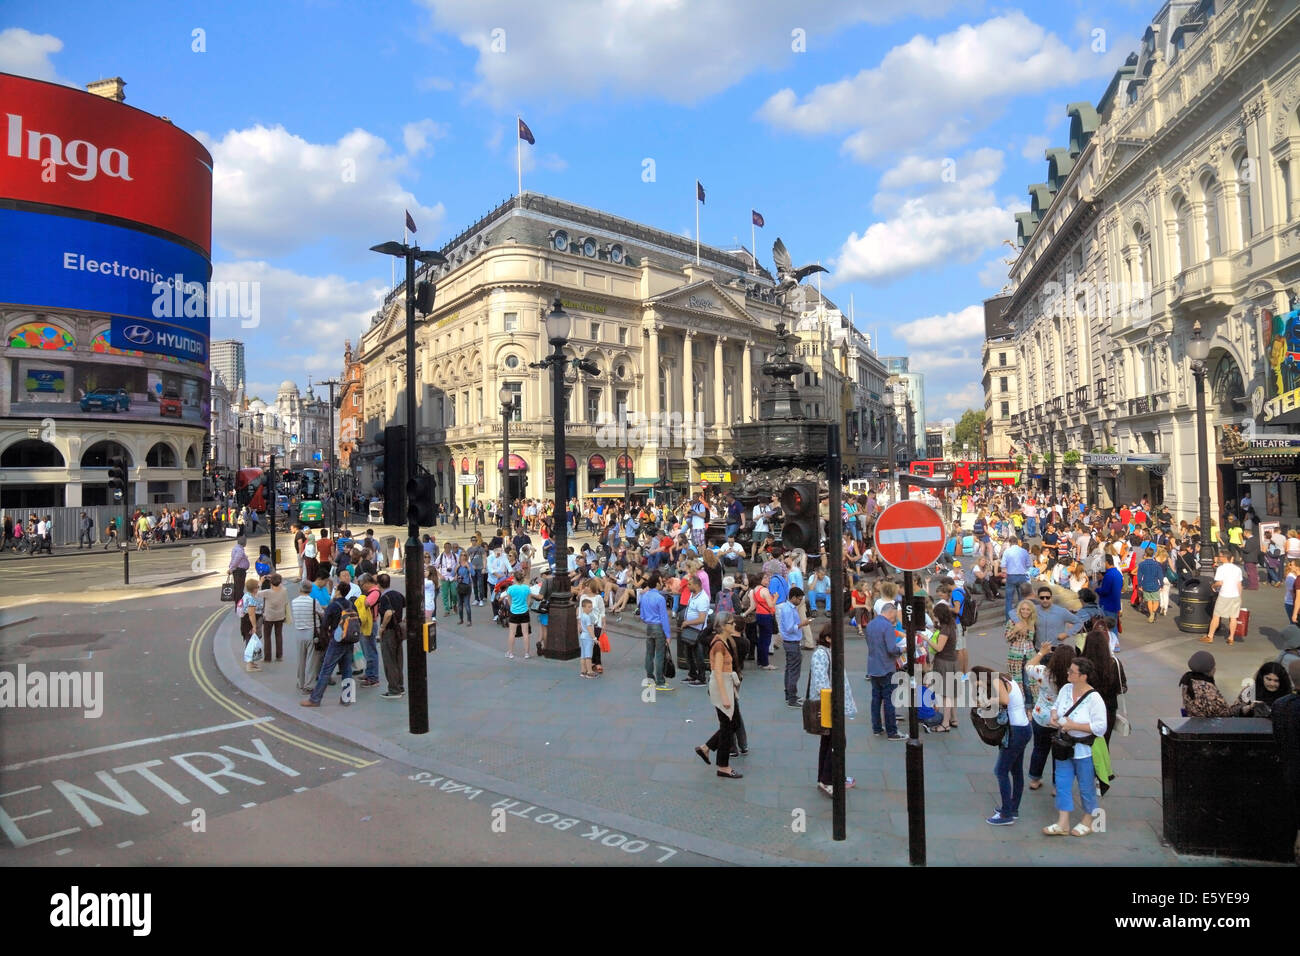 Piccadilly Circus and Statue of Eros  in London's West End - Stock Image